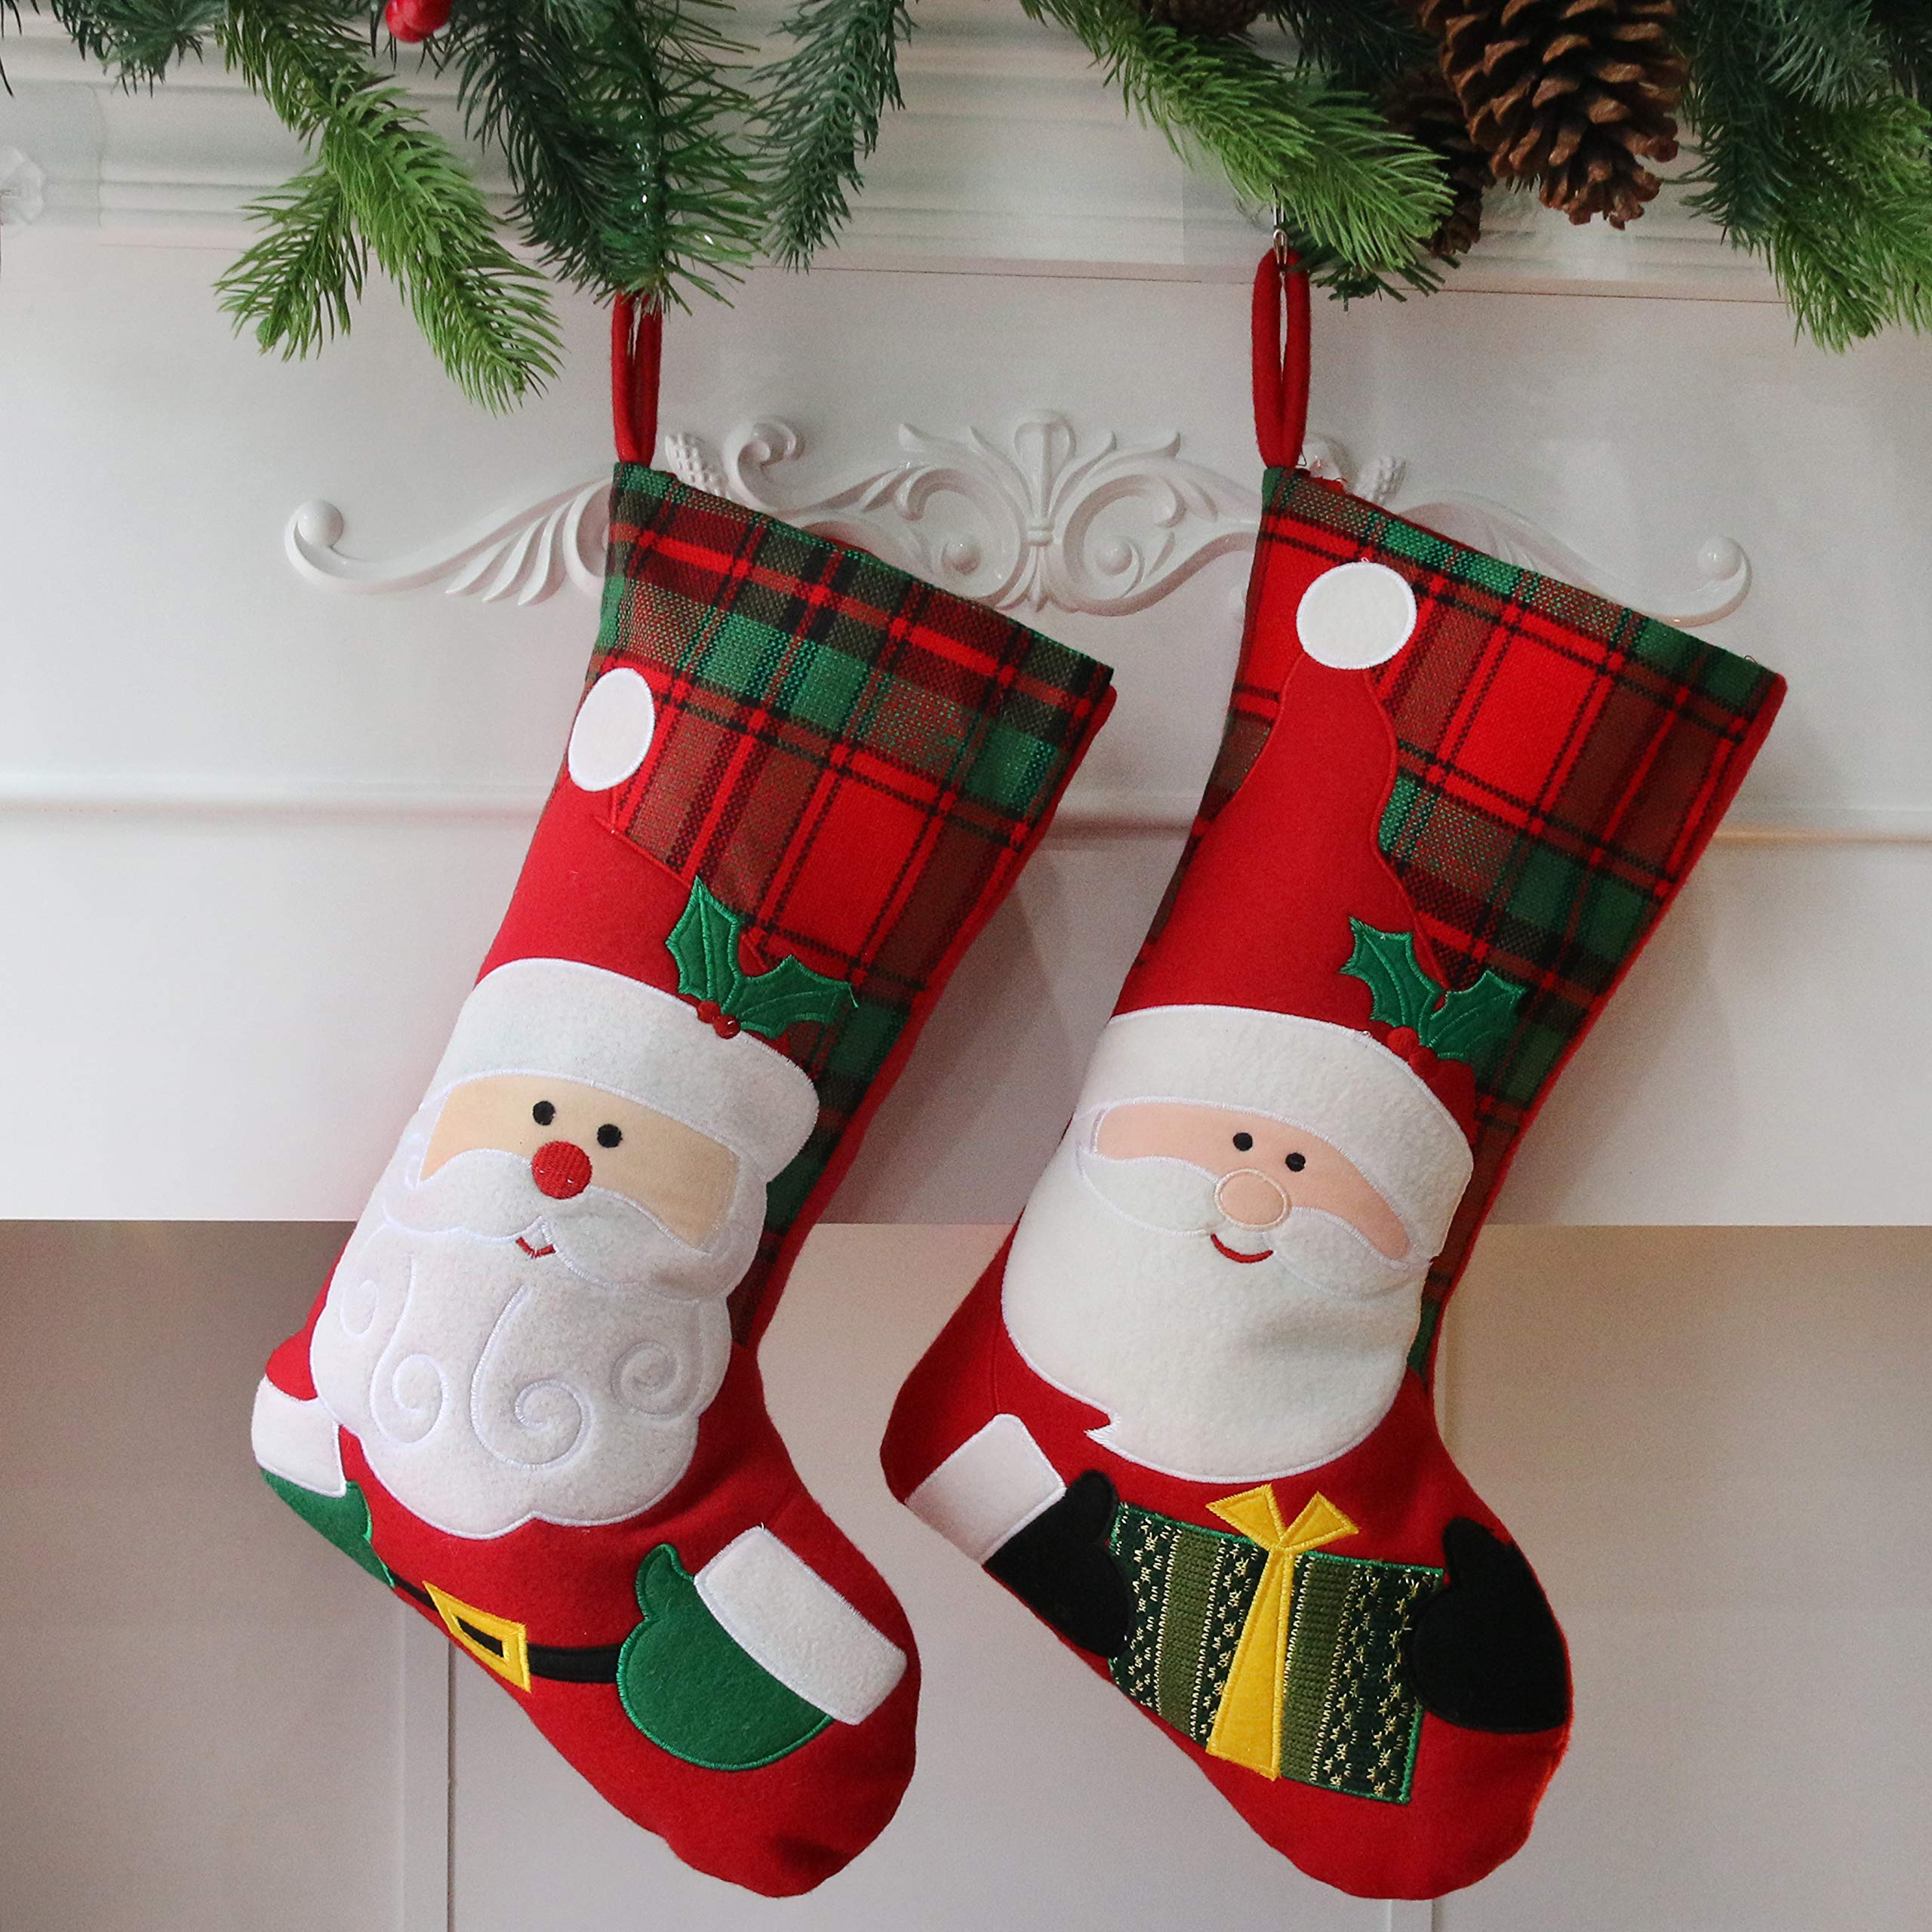 Houwsbaby 2 pcs Christmas Stockings Kit Santa Claus Felt Socks Decoration Tartan Holders Hanging Party Accessories, Red, 18 inches